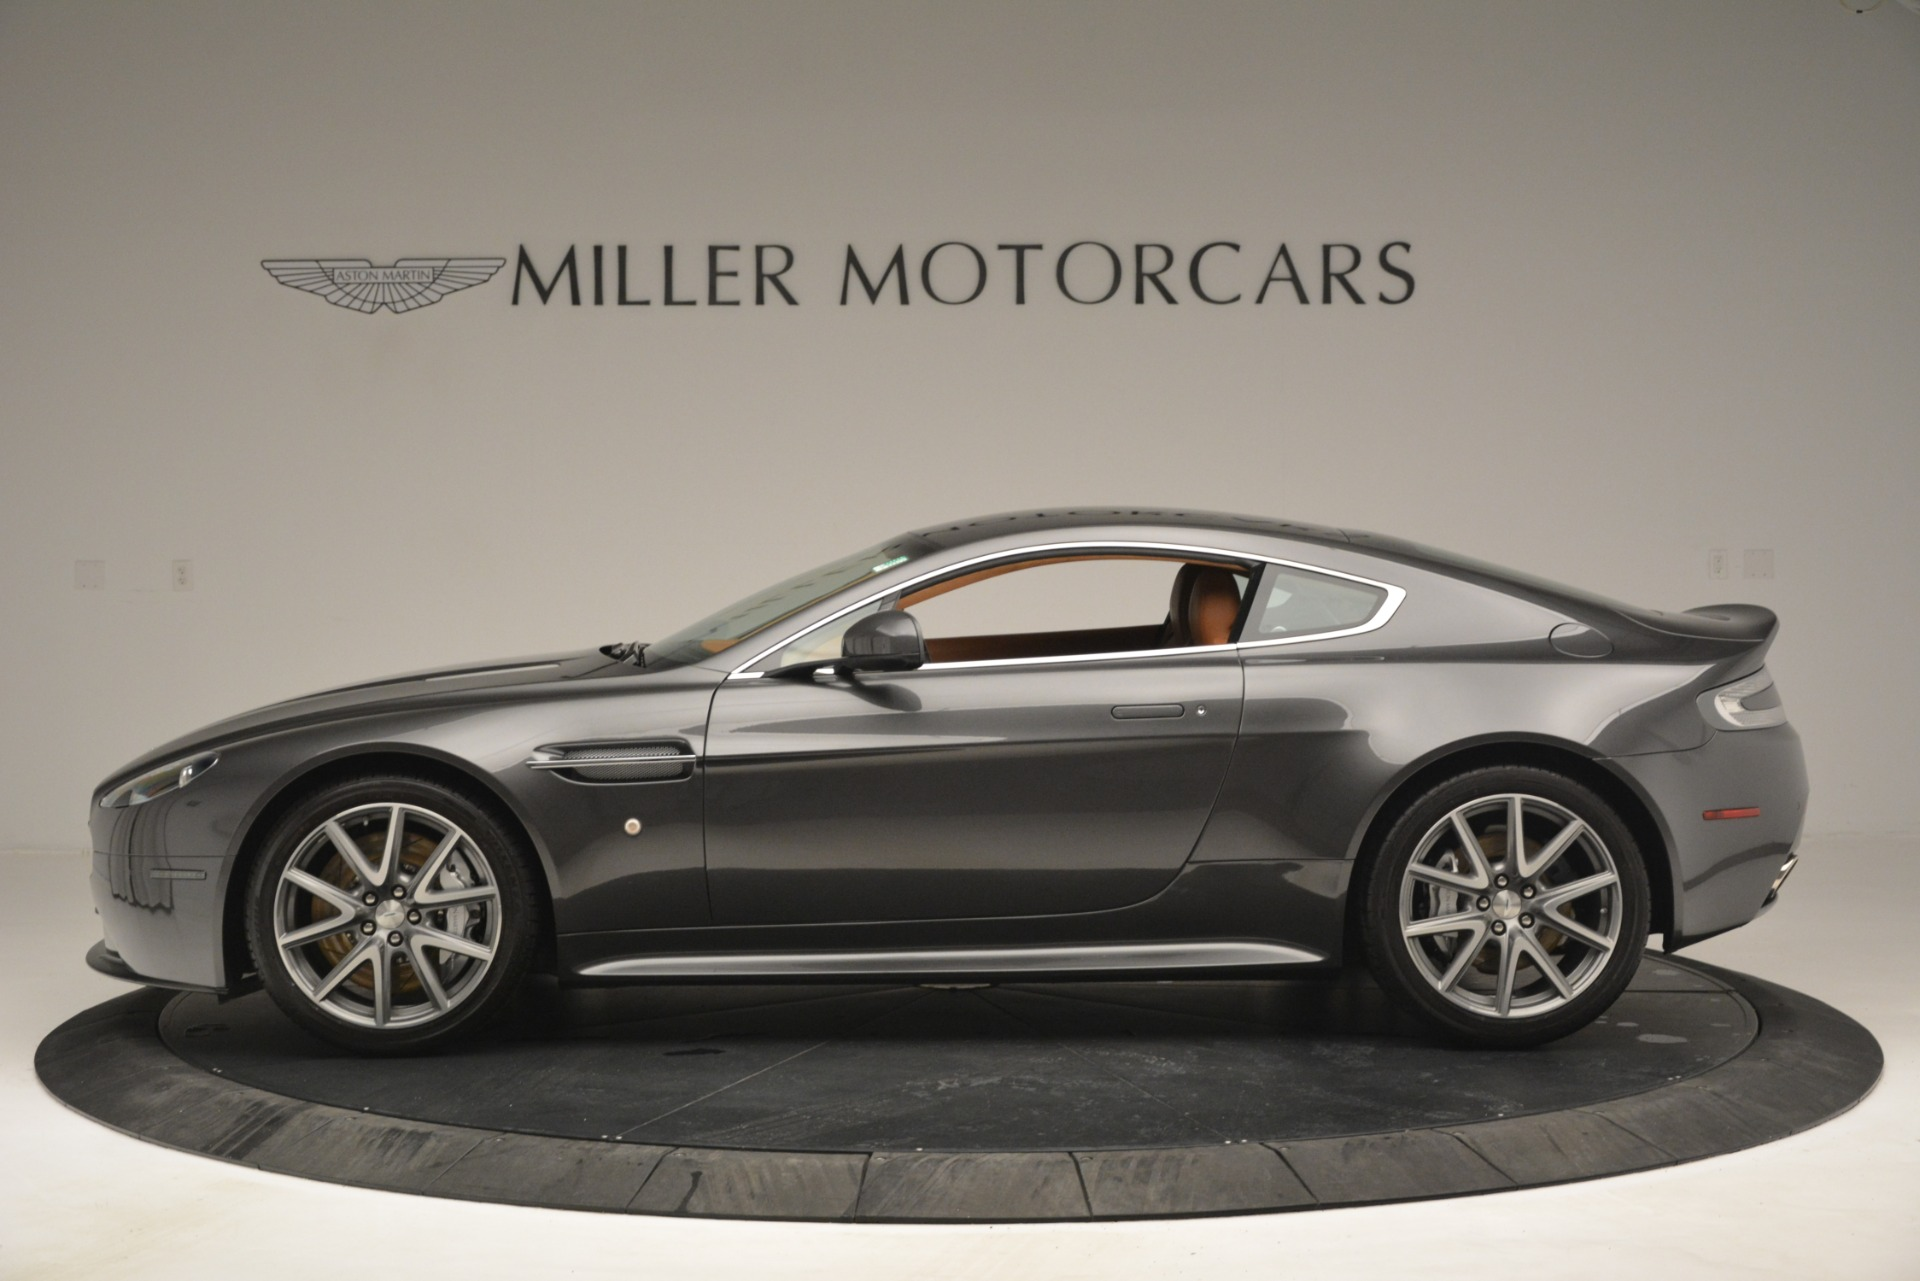 Used 2012 Aston Martin V8 Vantage S Coupe For Sale In Westport, CT 2951_p3